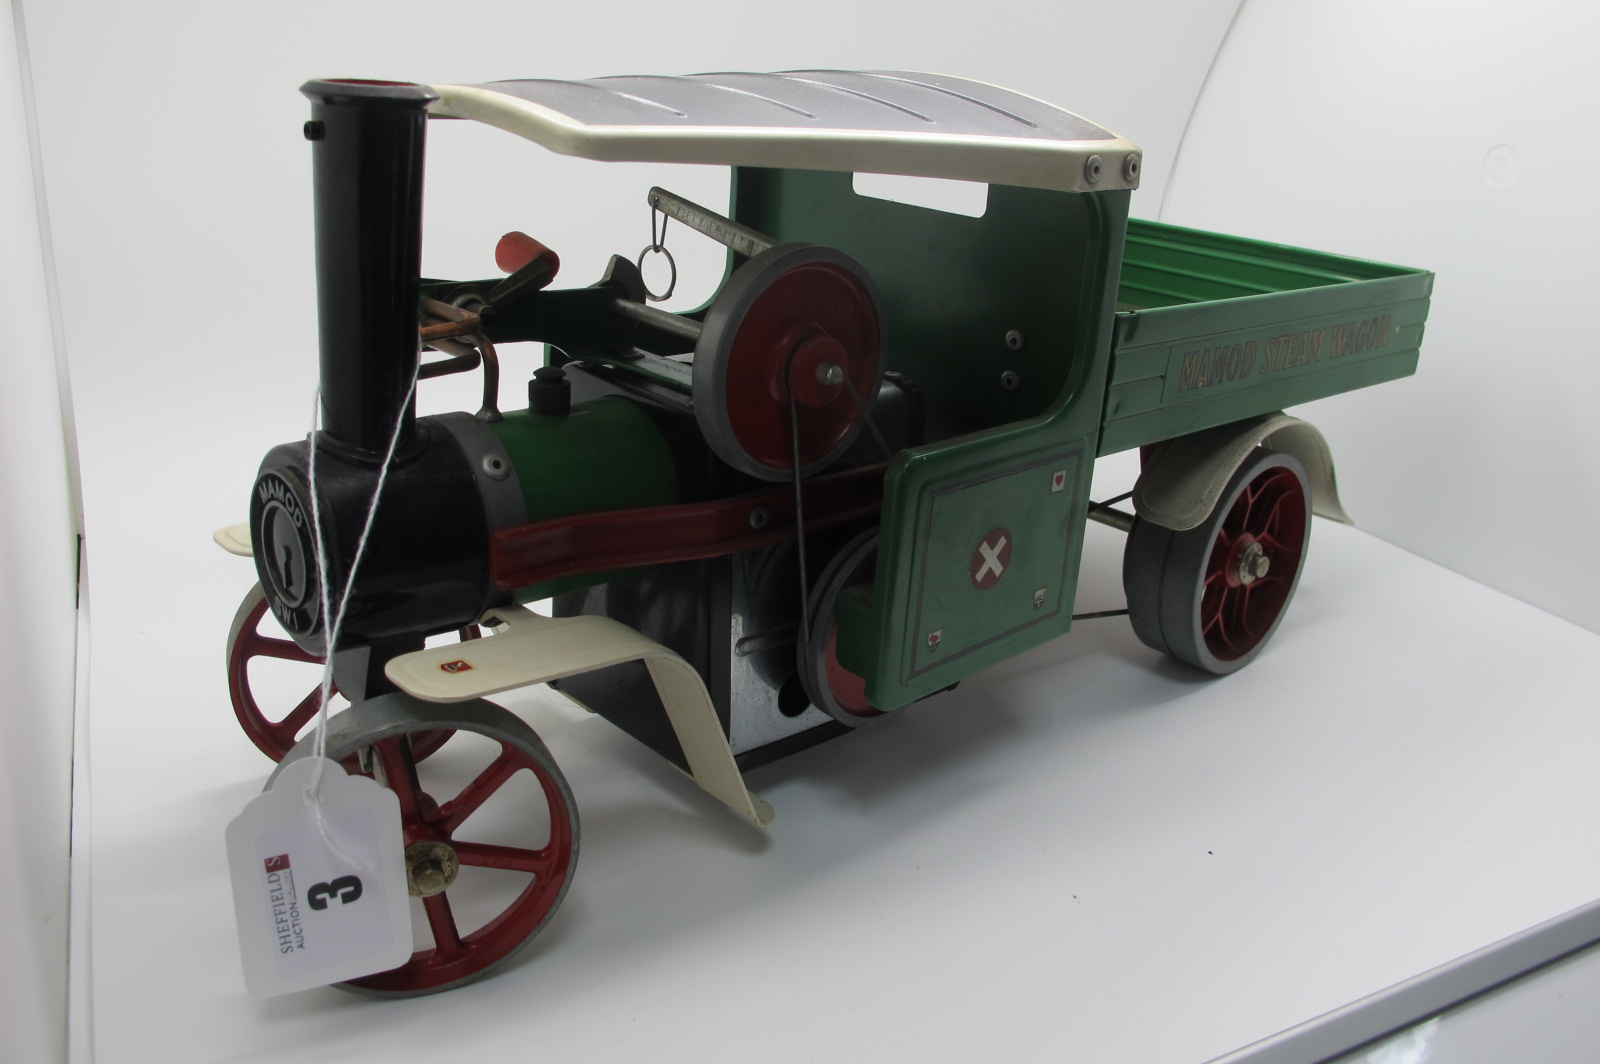 A Mamo SWI Steam Wagon, green finish with black roof, appears complete, including burner, appears to